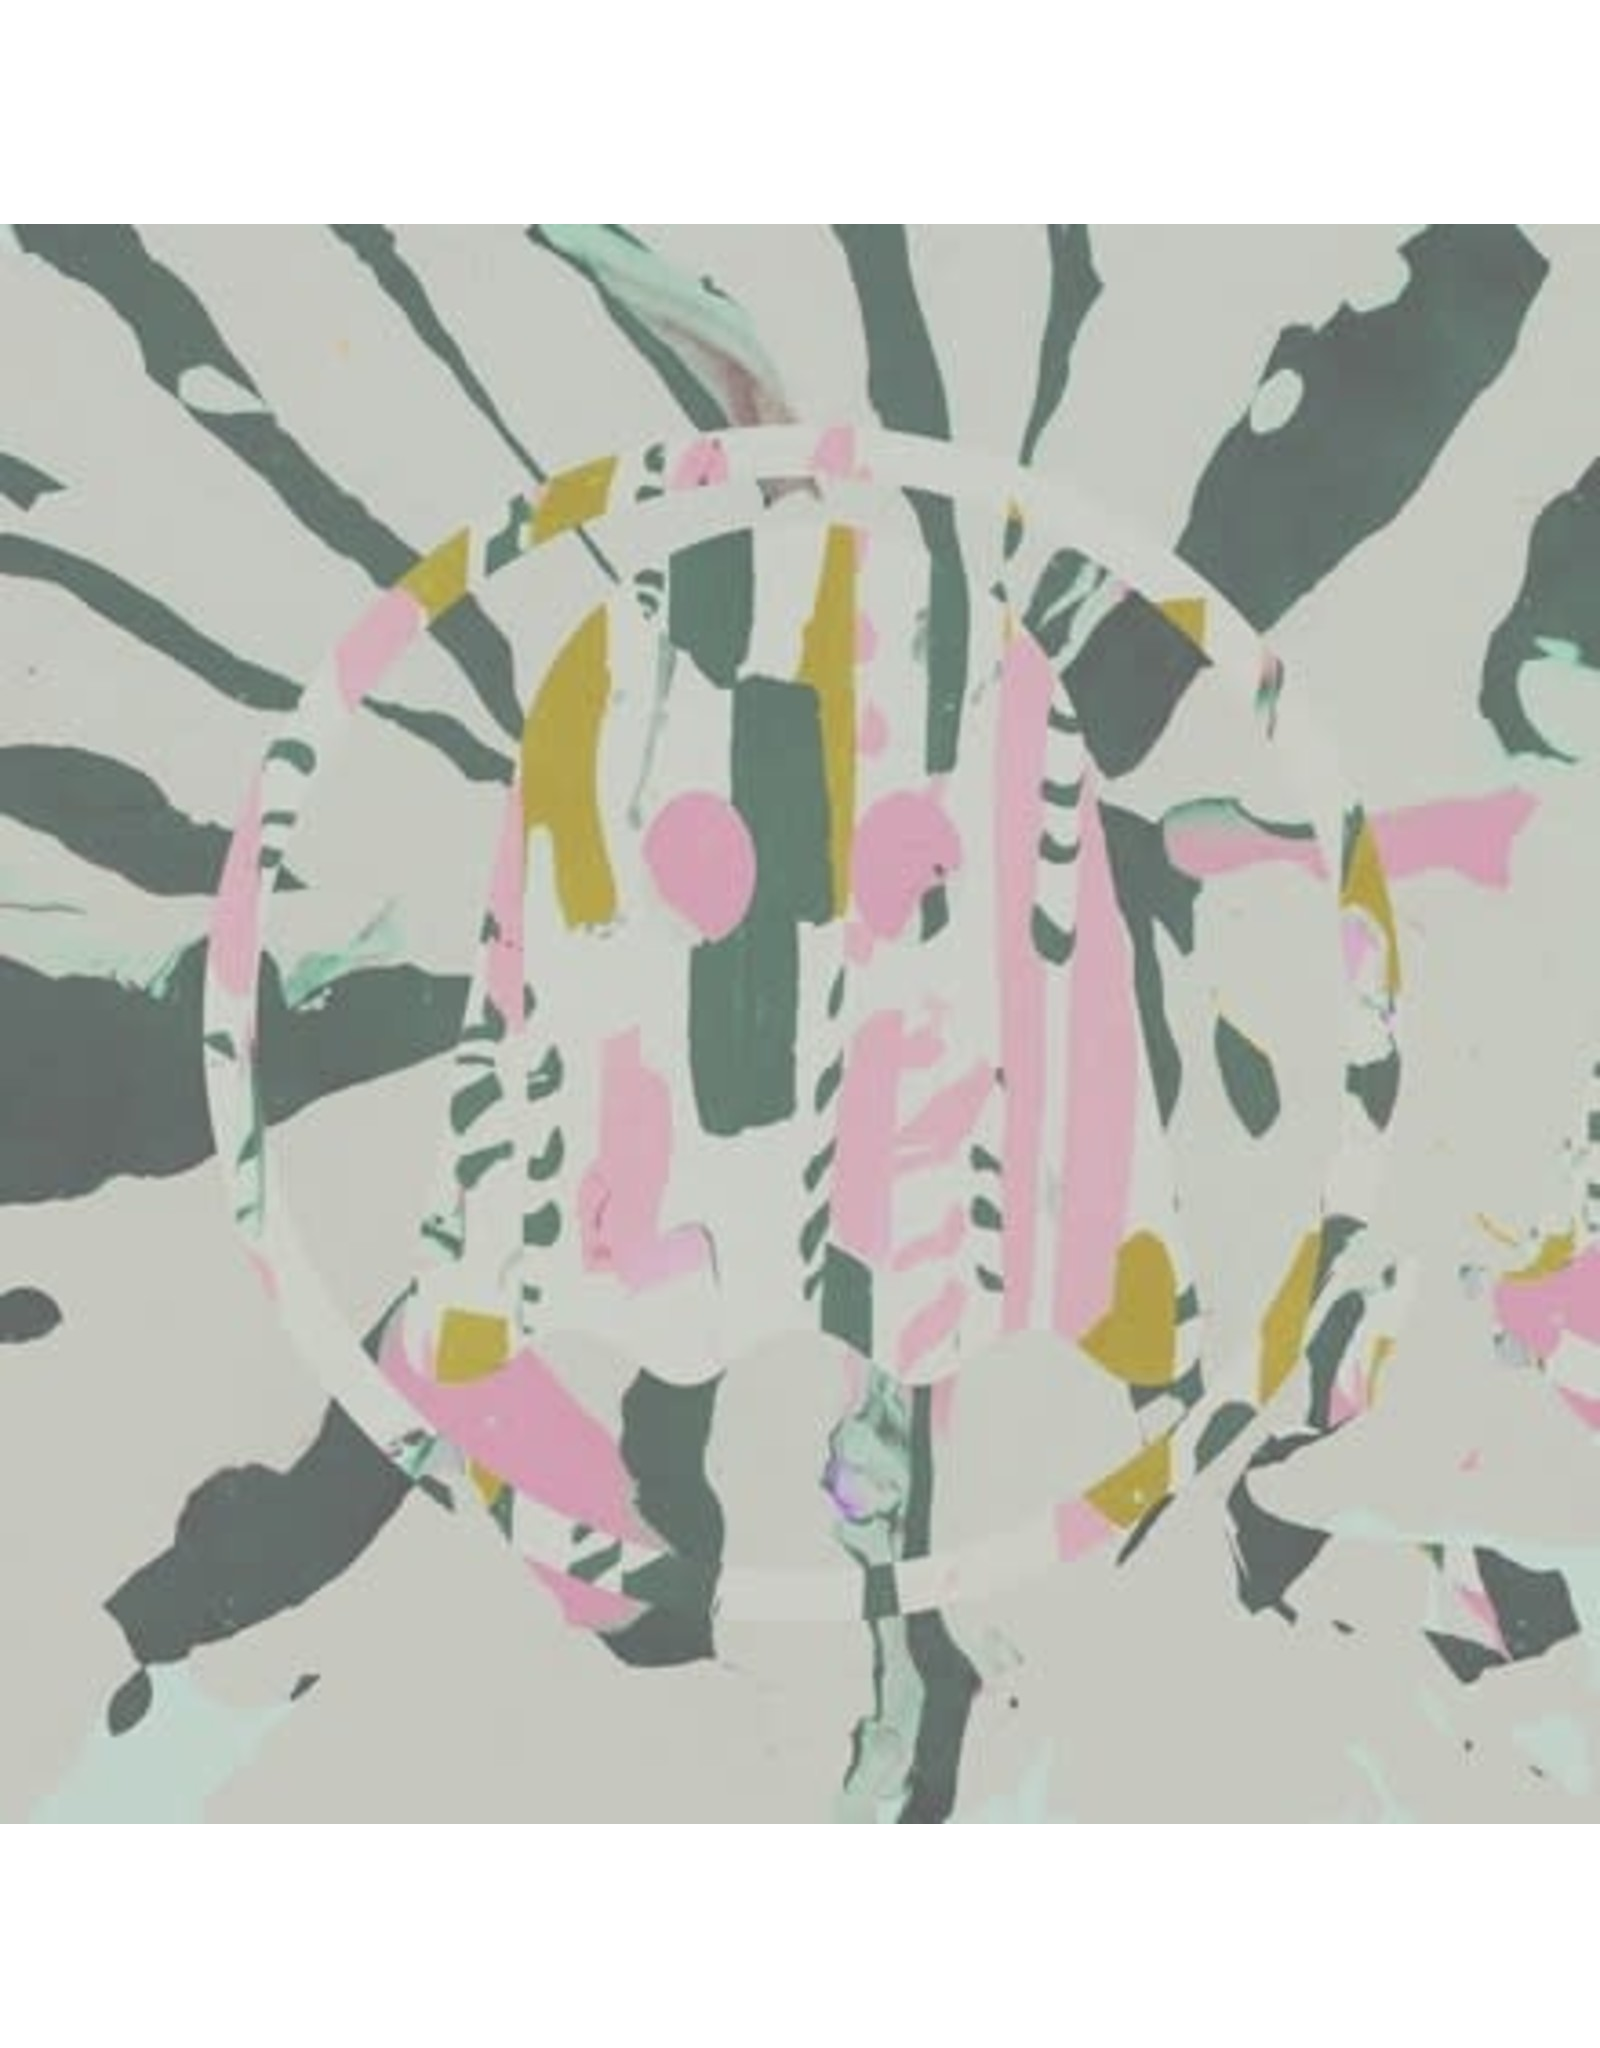 Ghostly V/A: Ghostly Swim 3 (green and pink marbled vinyl) LP